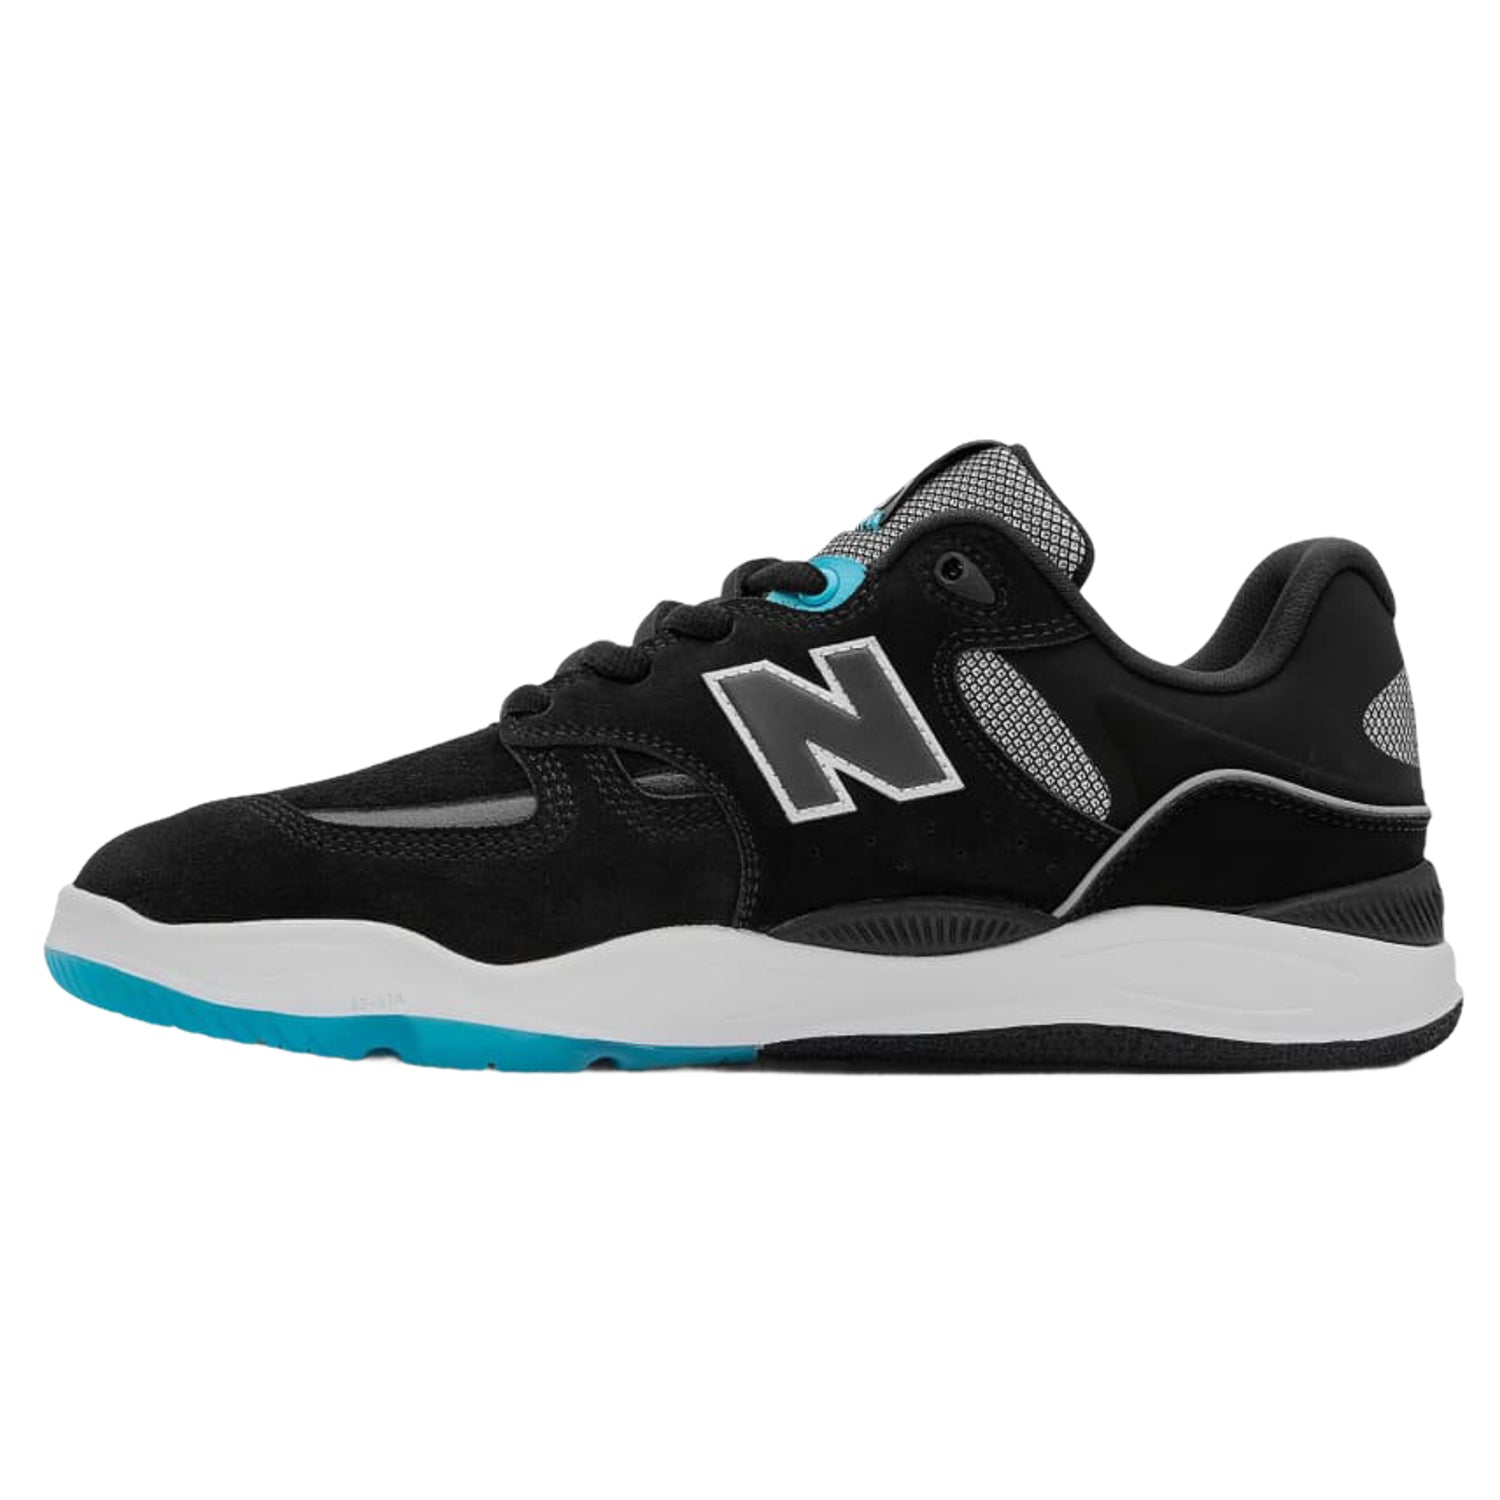 New Balance Numeric Tiago 1010 Black/Blue